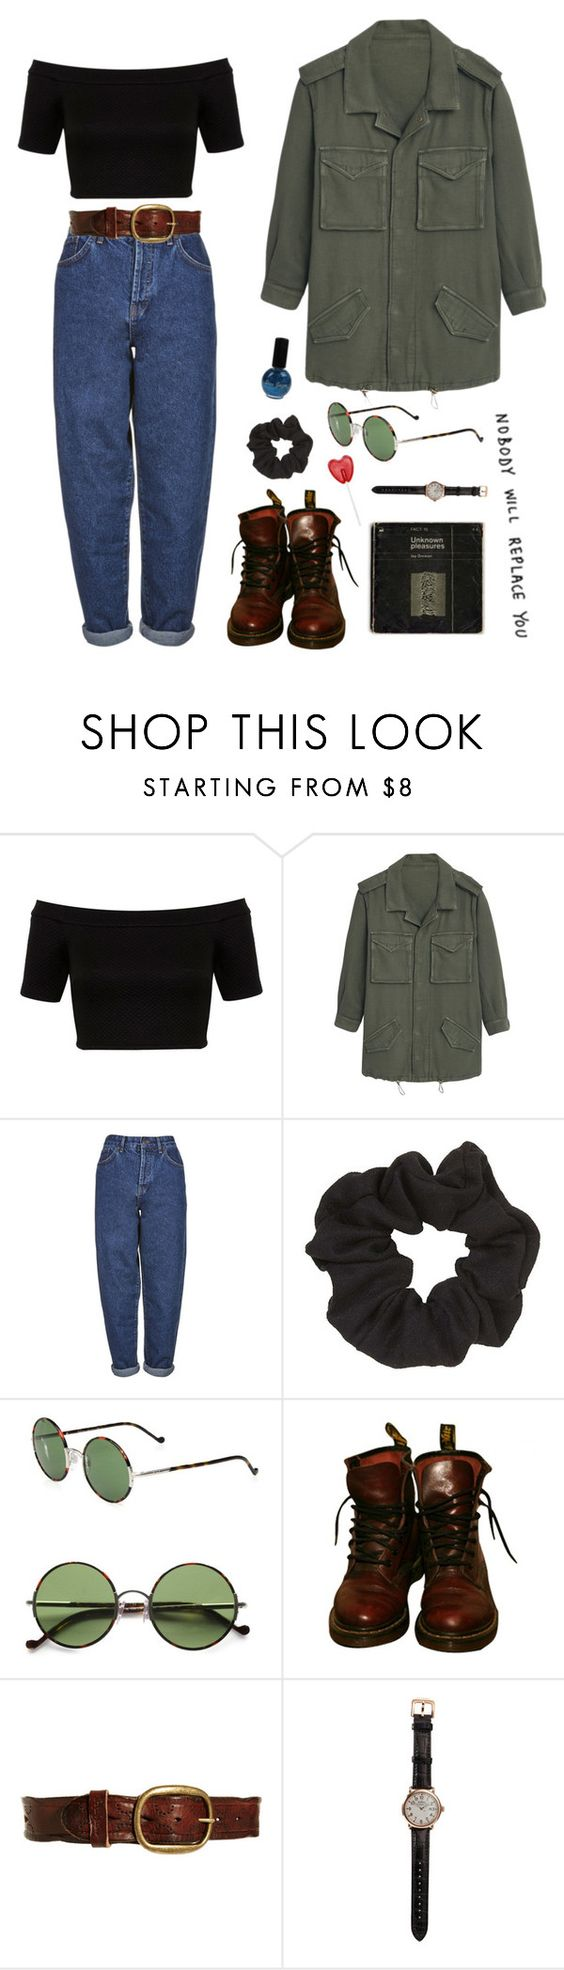 """Untitled #53"" by marie-w-holm ❤ liked on Polyvore featuring Miss Selfridge, MANGO, Boutique, Topshop, Ralph Lauren, Dr. Martens, Pepe Jeans London and Shinola"